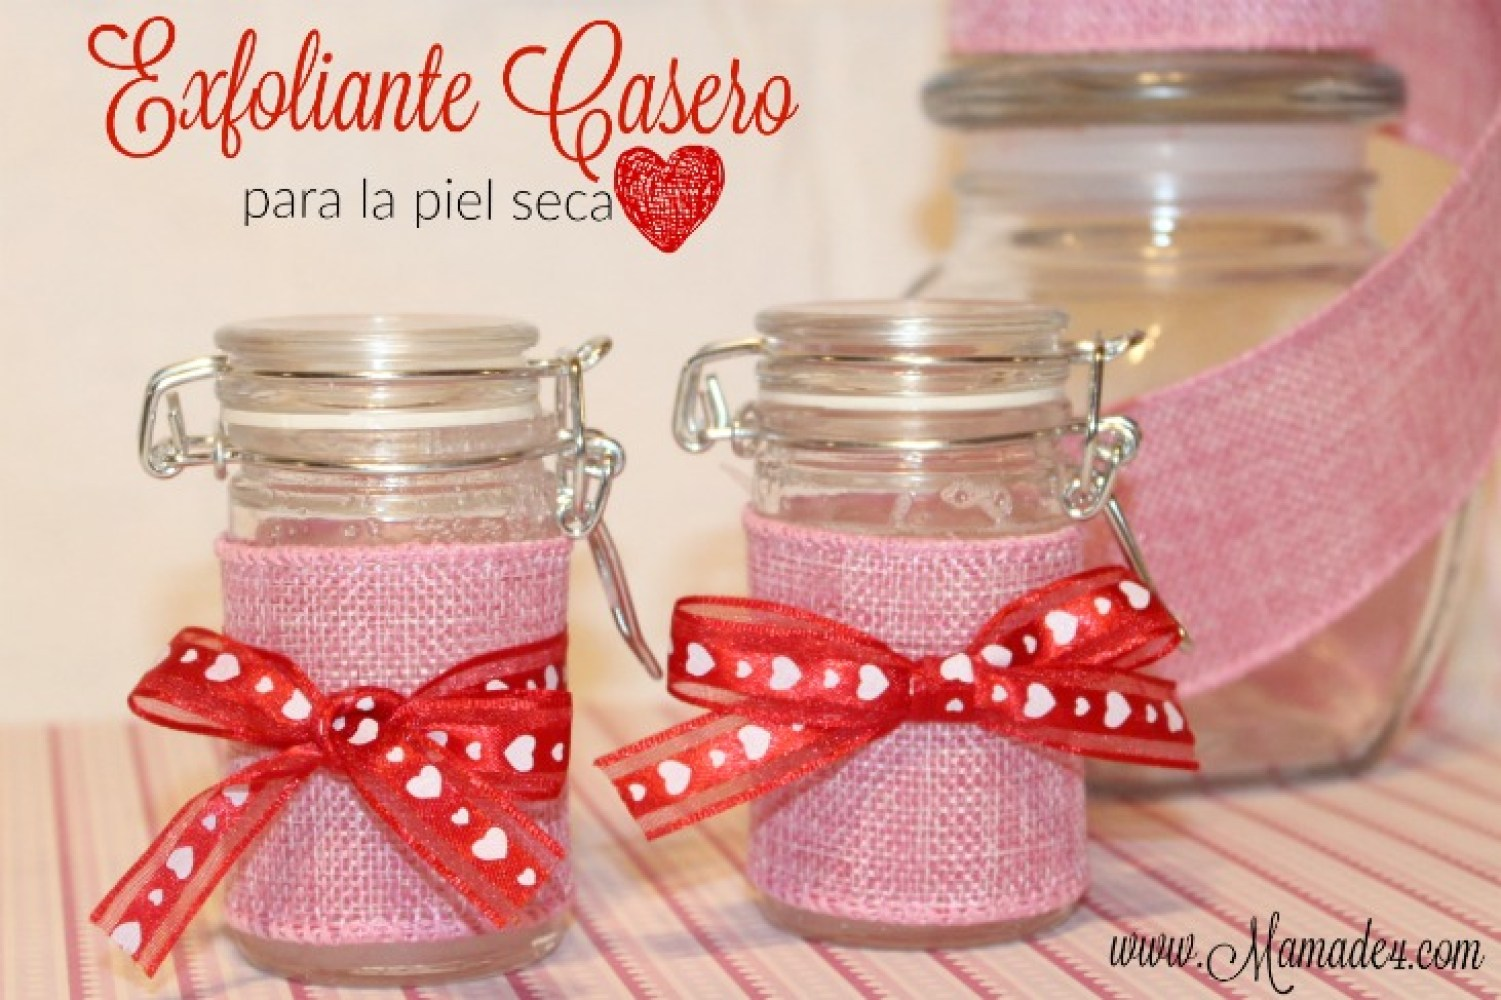 6-Ideas-de-regalos-para-San-Valentines-Day